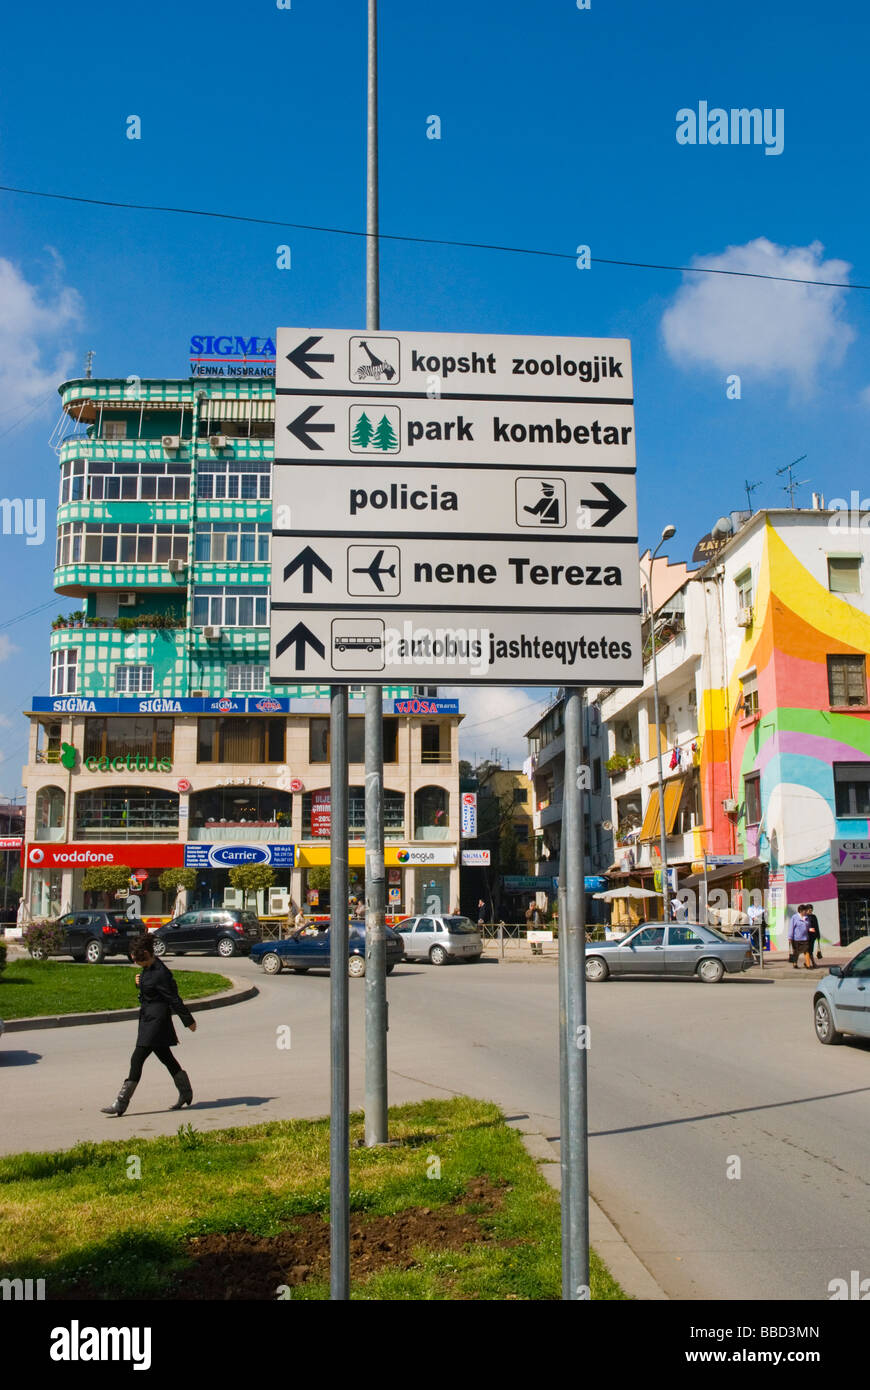 Blloku district Tirana Albania Europe - Stock Image